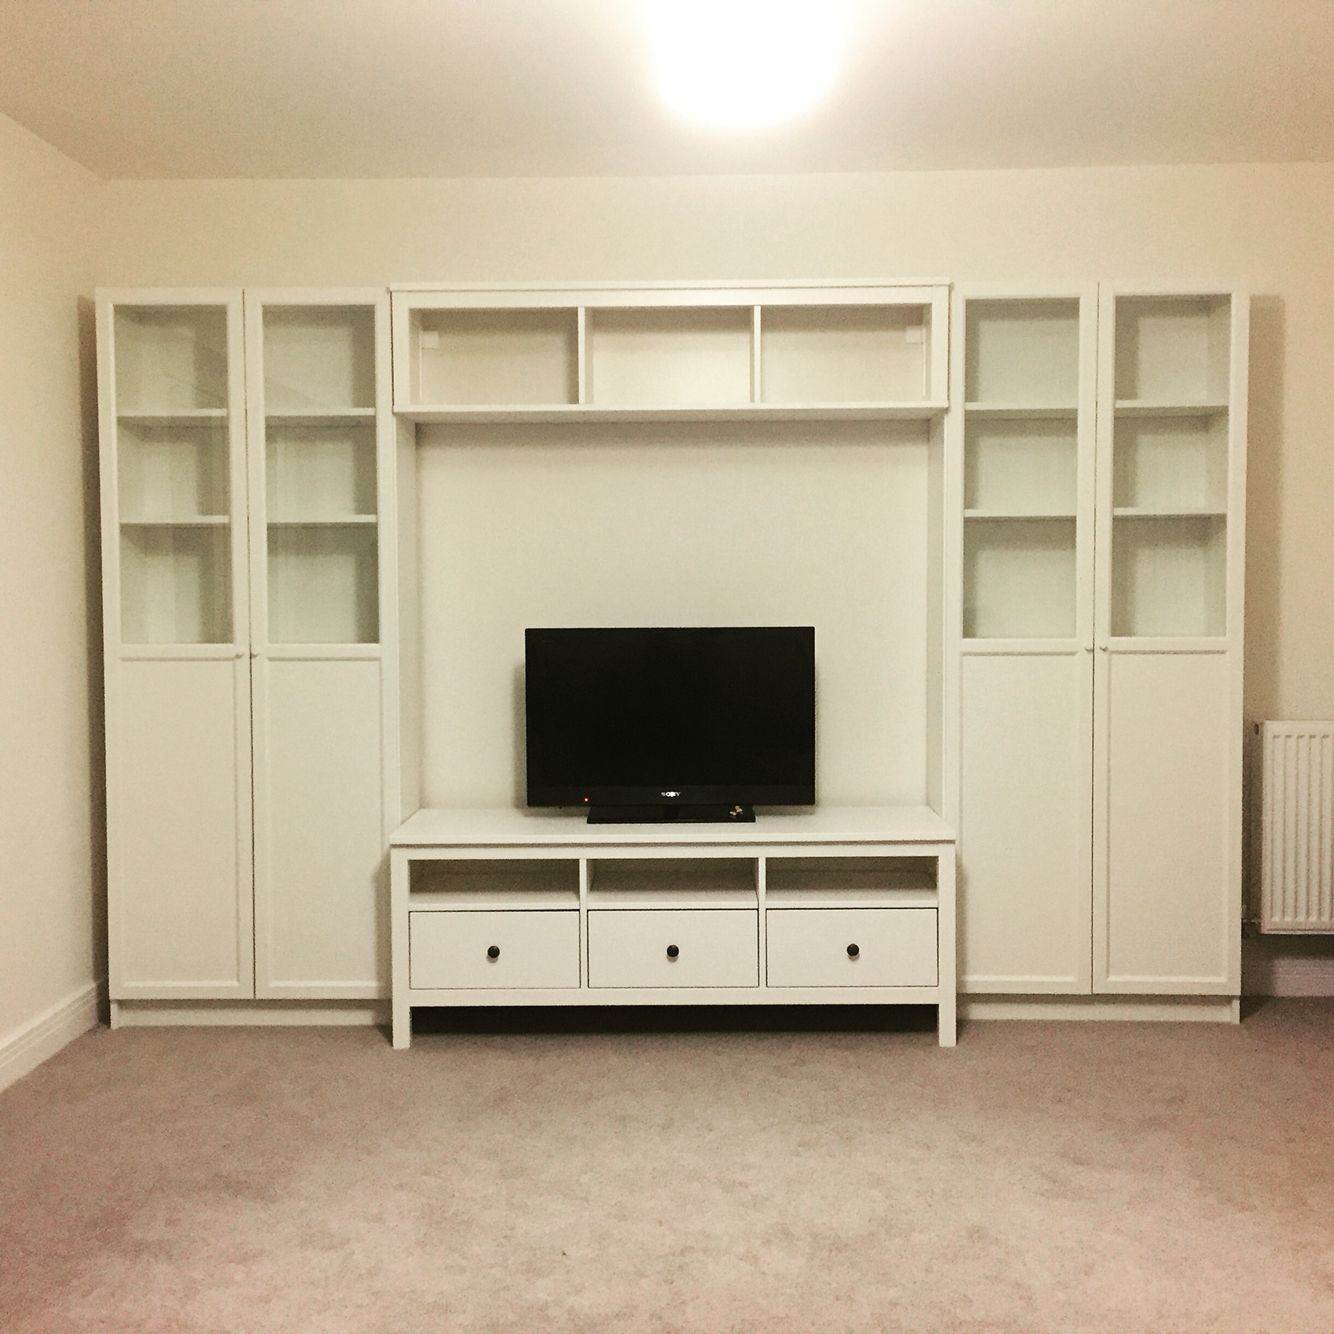 ikea hemnes entertainment center instructions